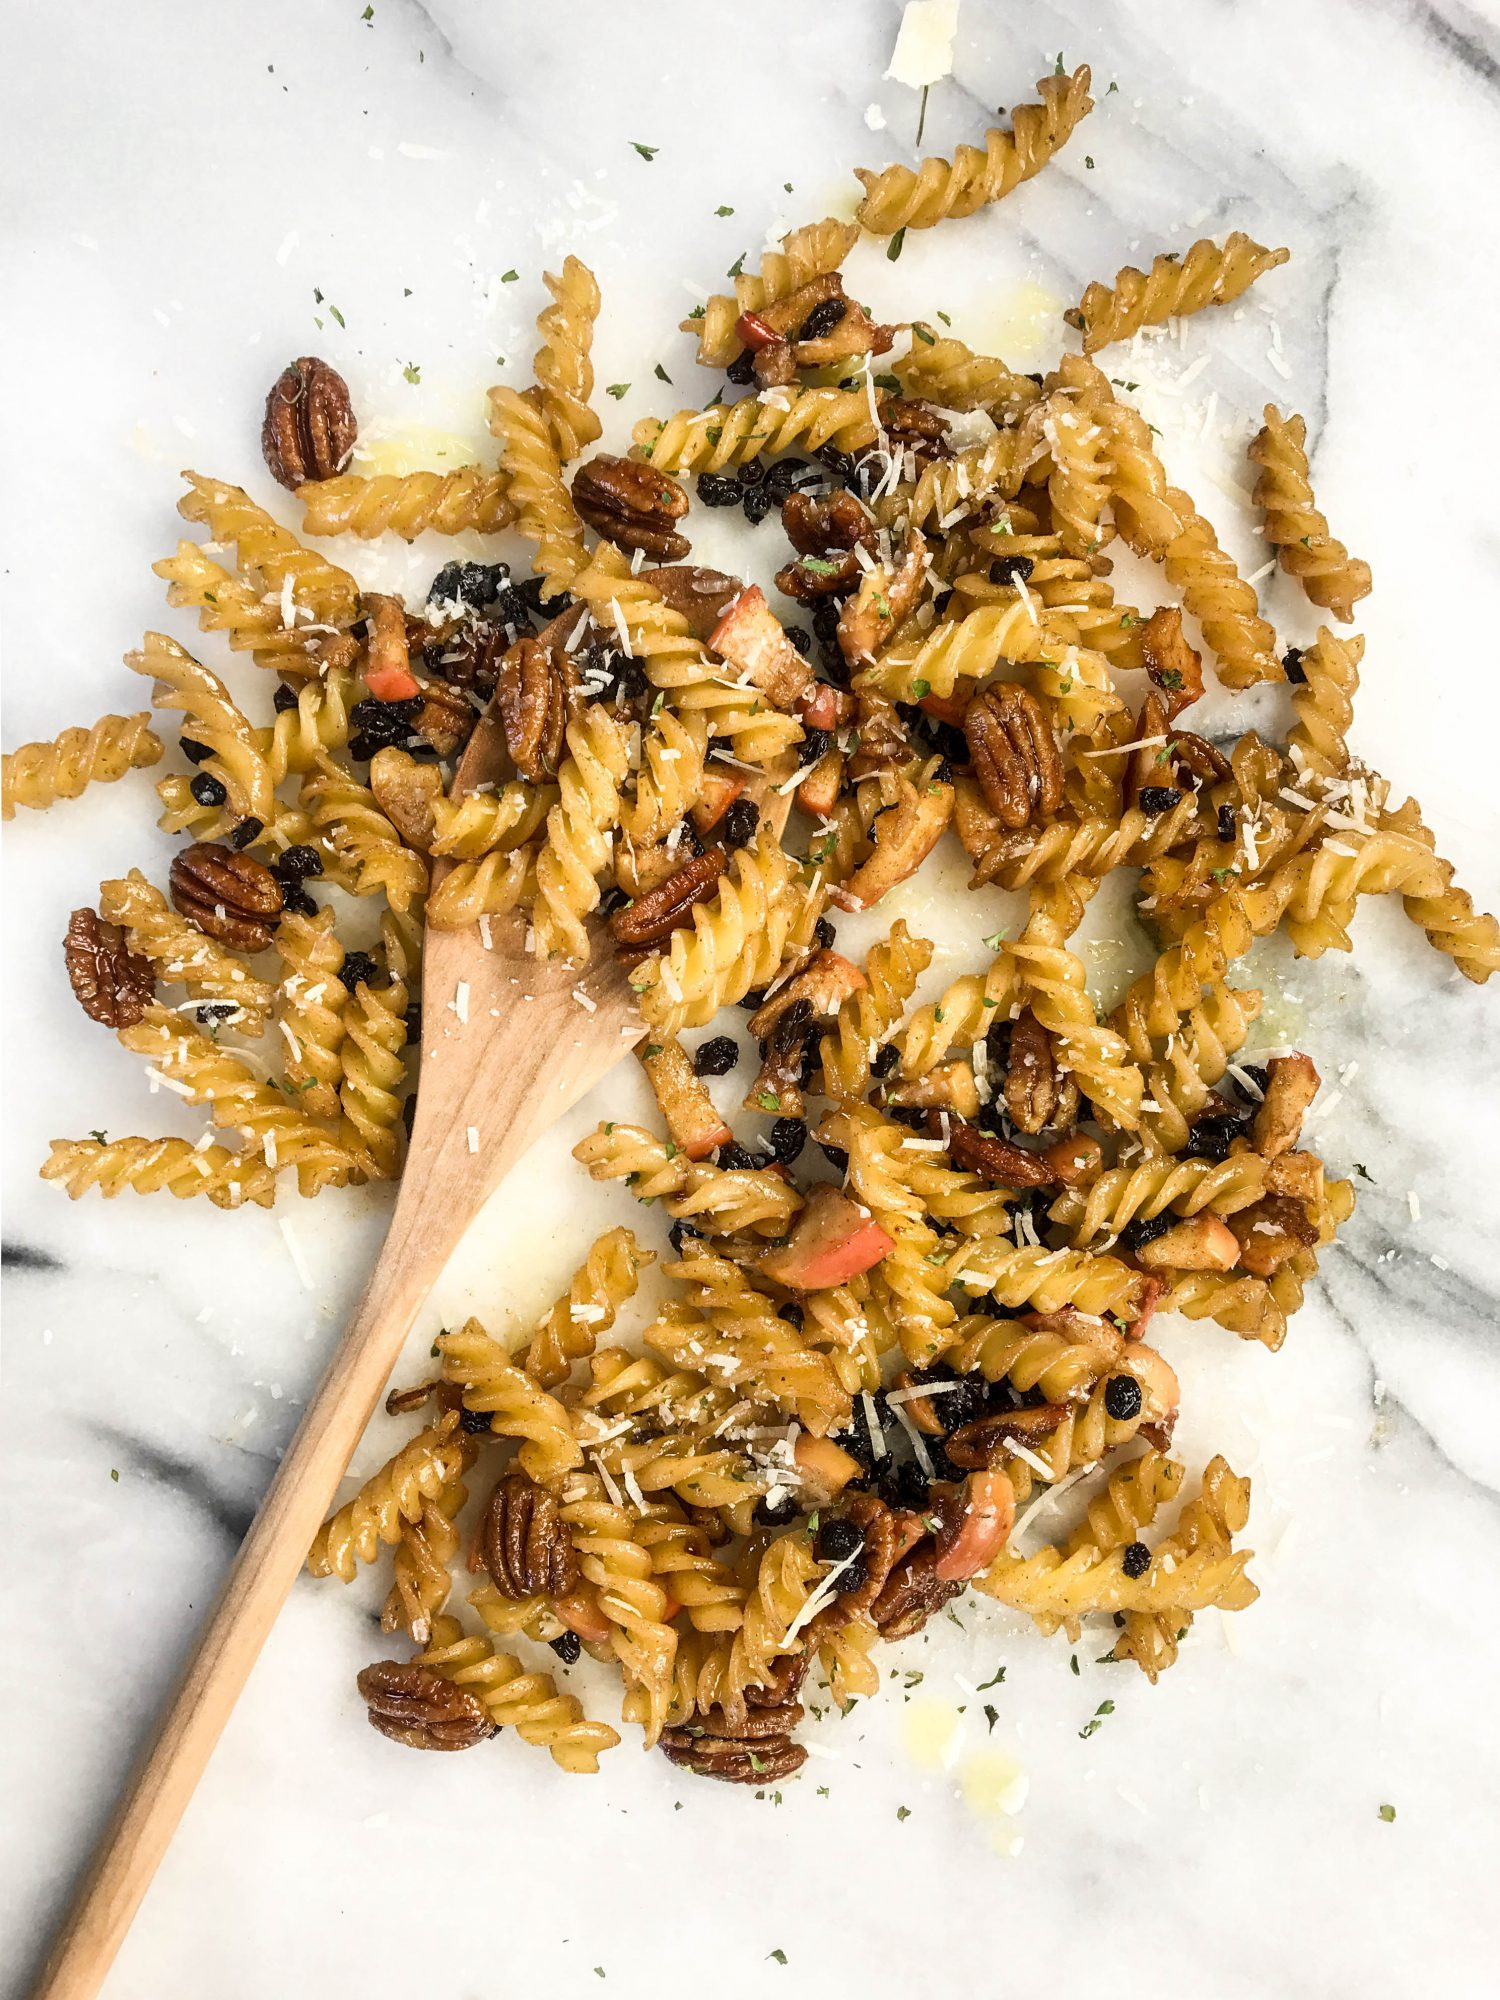 Cinnamon Raisin Pasta